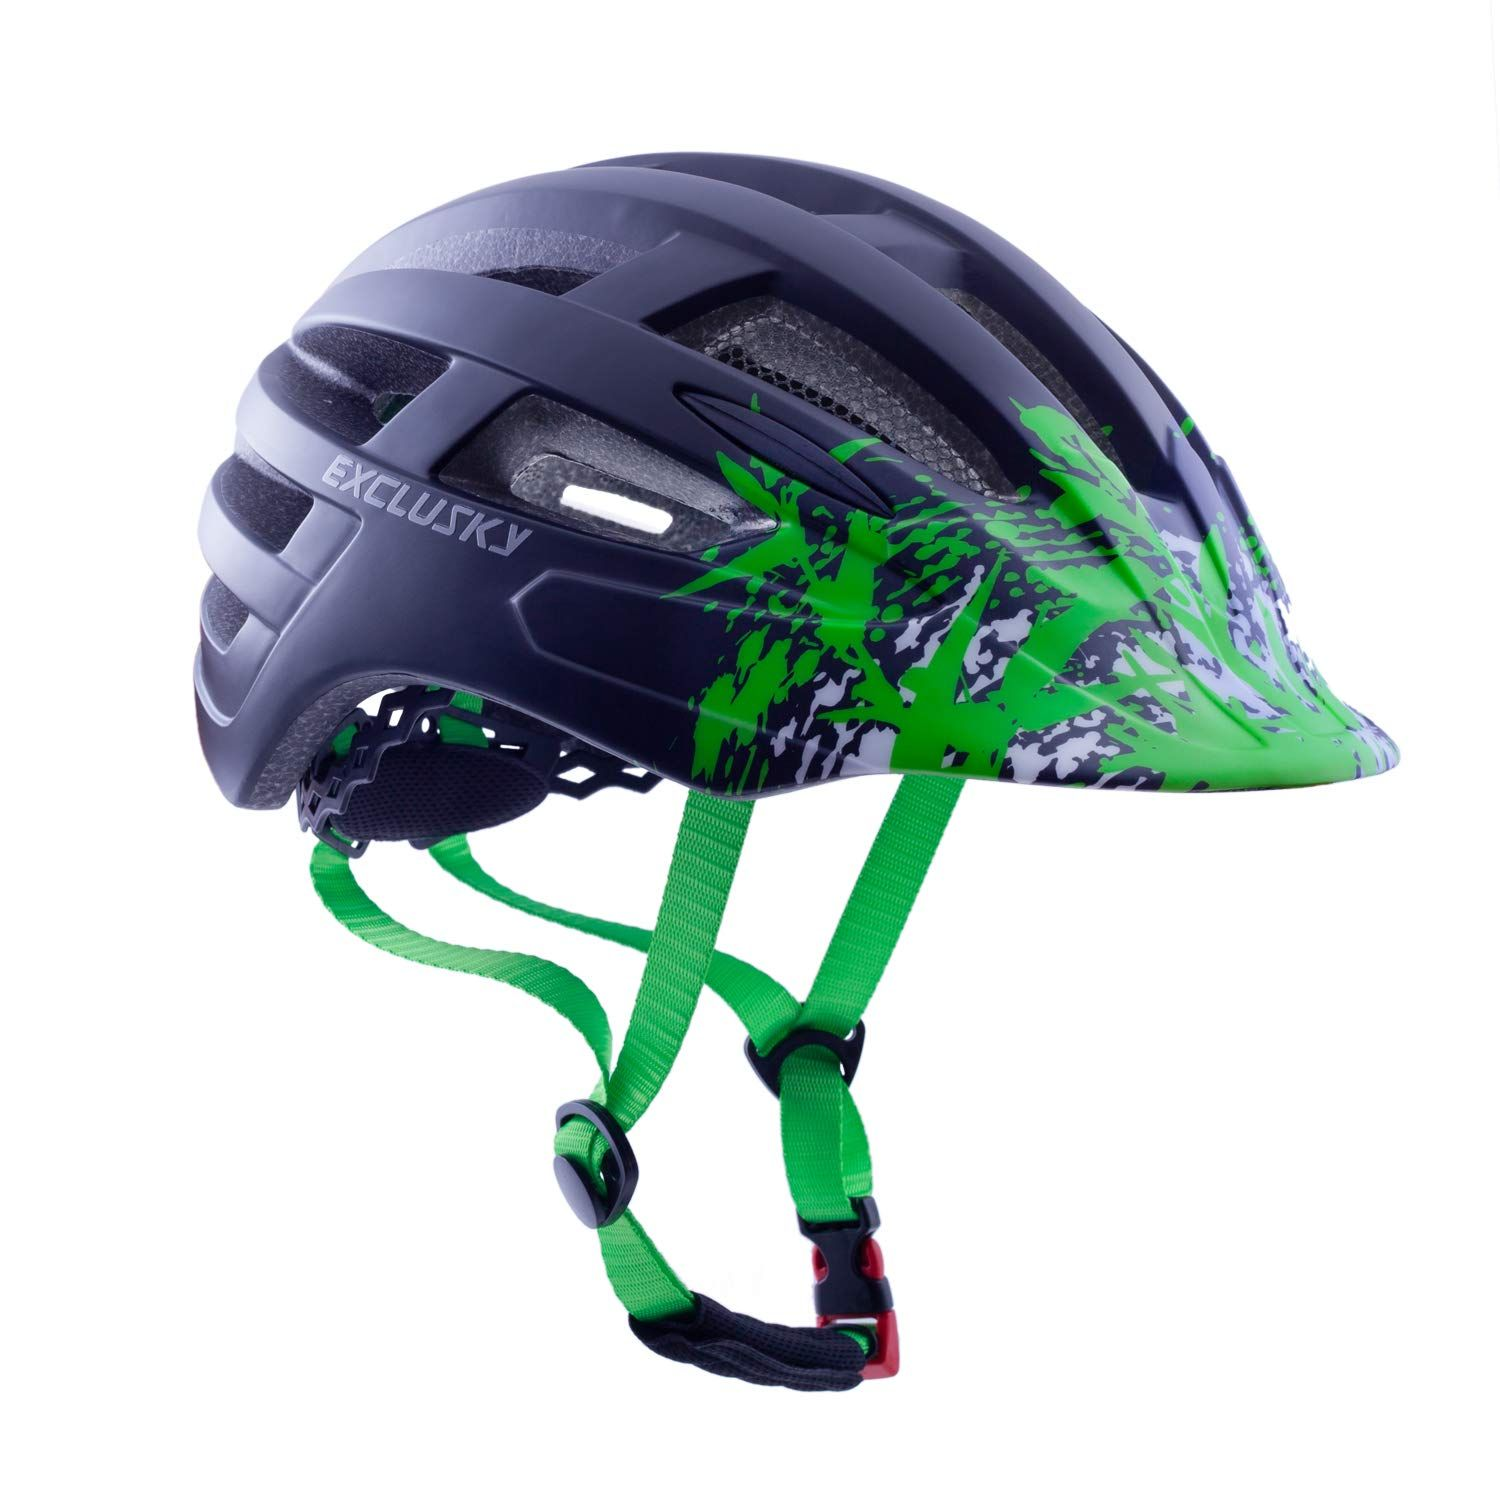 Pin On Helmets And Accessories